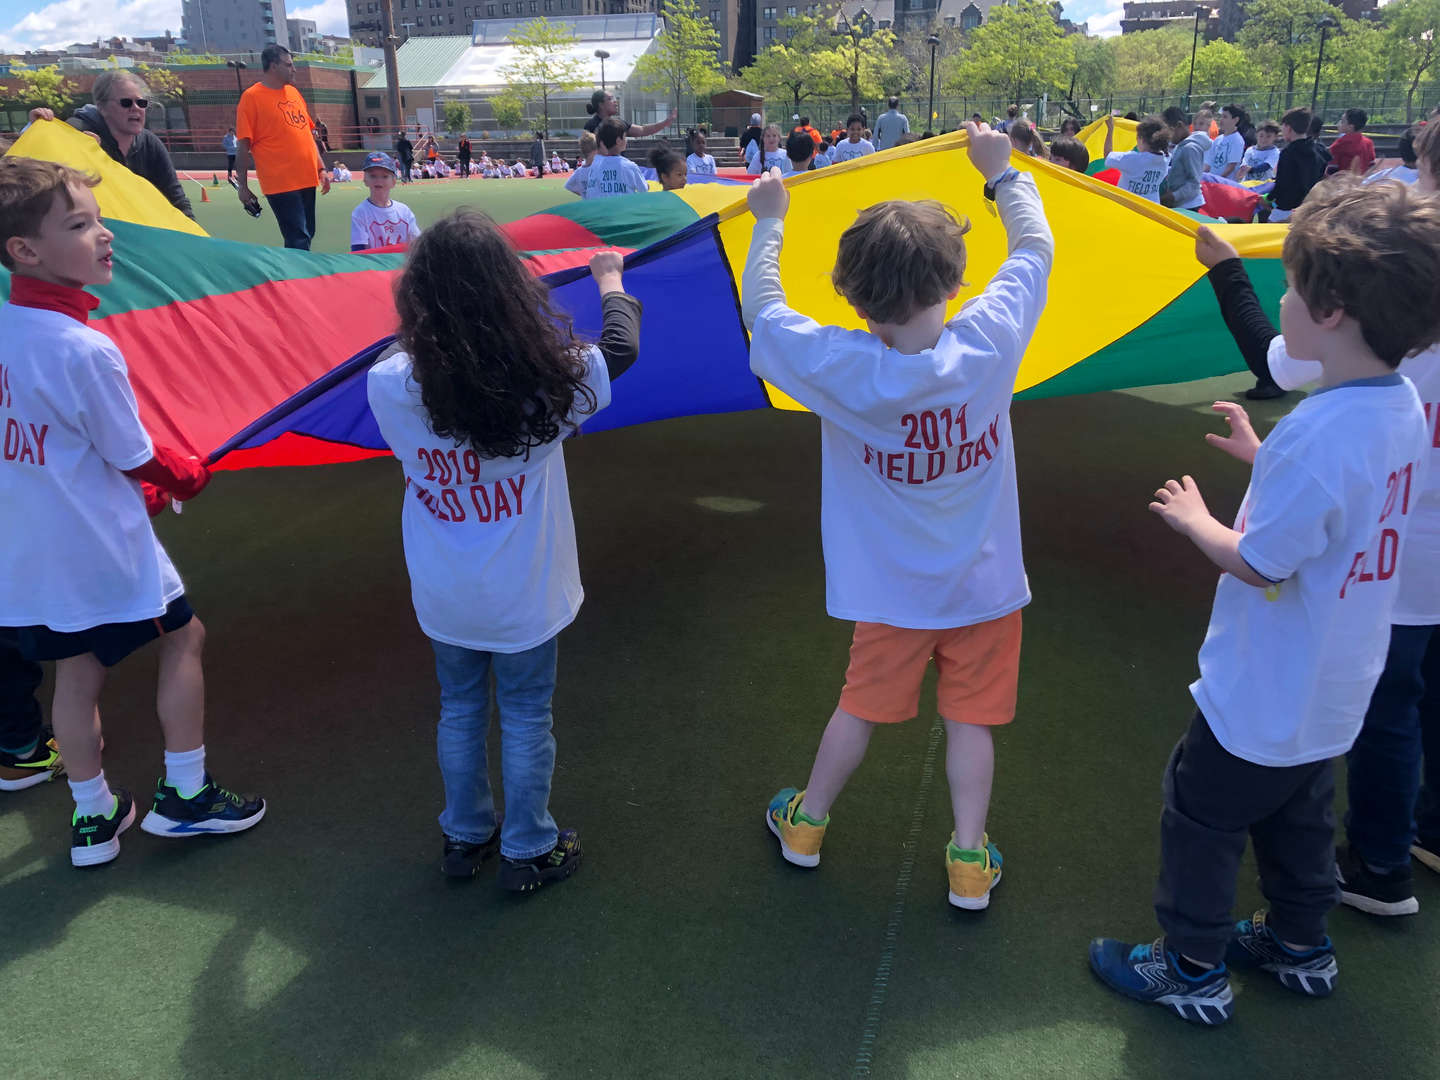 Children playing during field day 2019